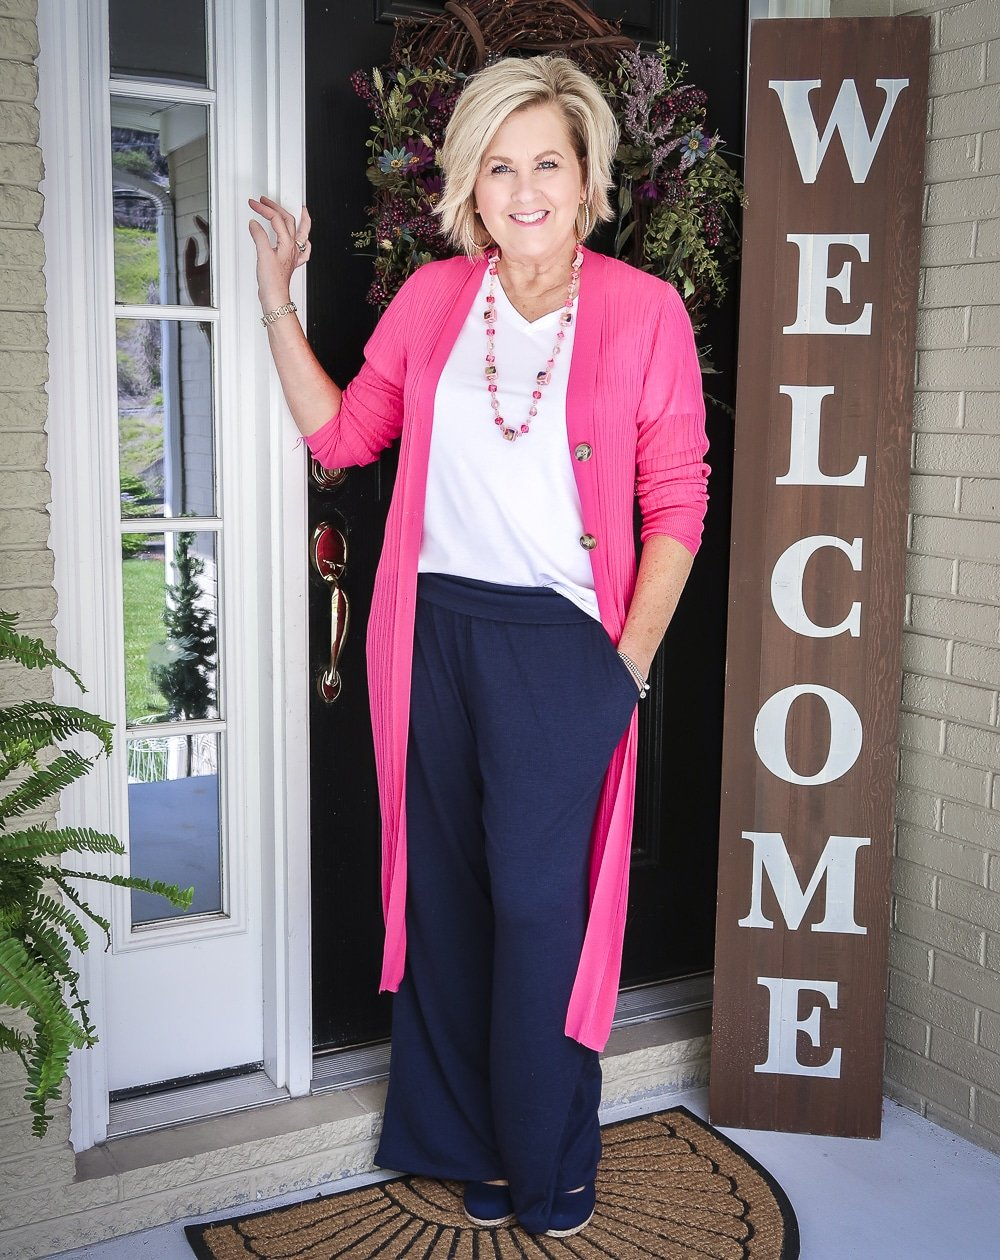 Fashion Blogger 50 Is Not Old wearing a hot pink duster cardigan with a white v-neck t-shirt, and navy lounge pants